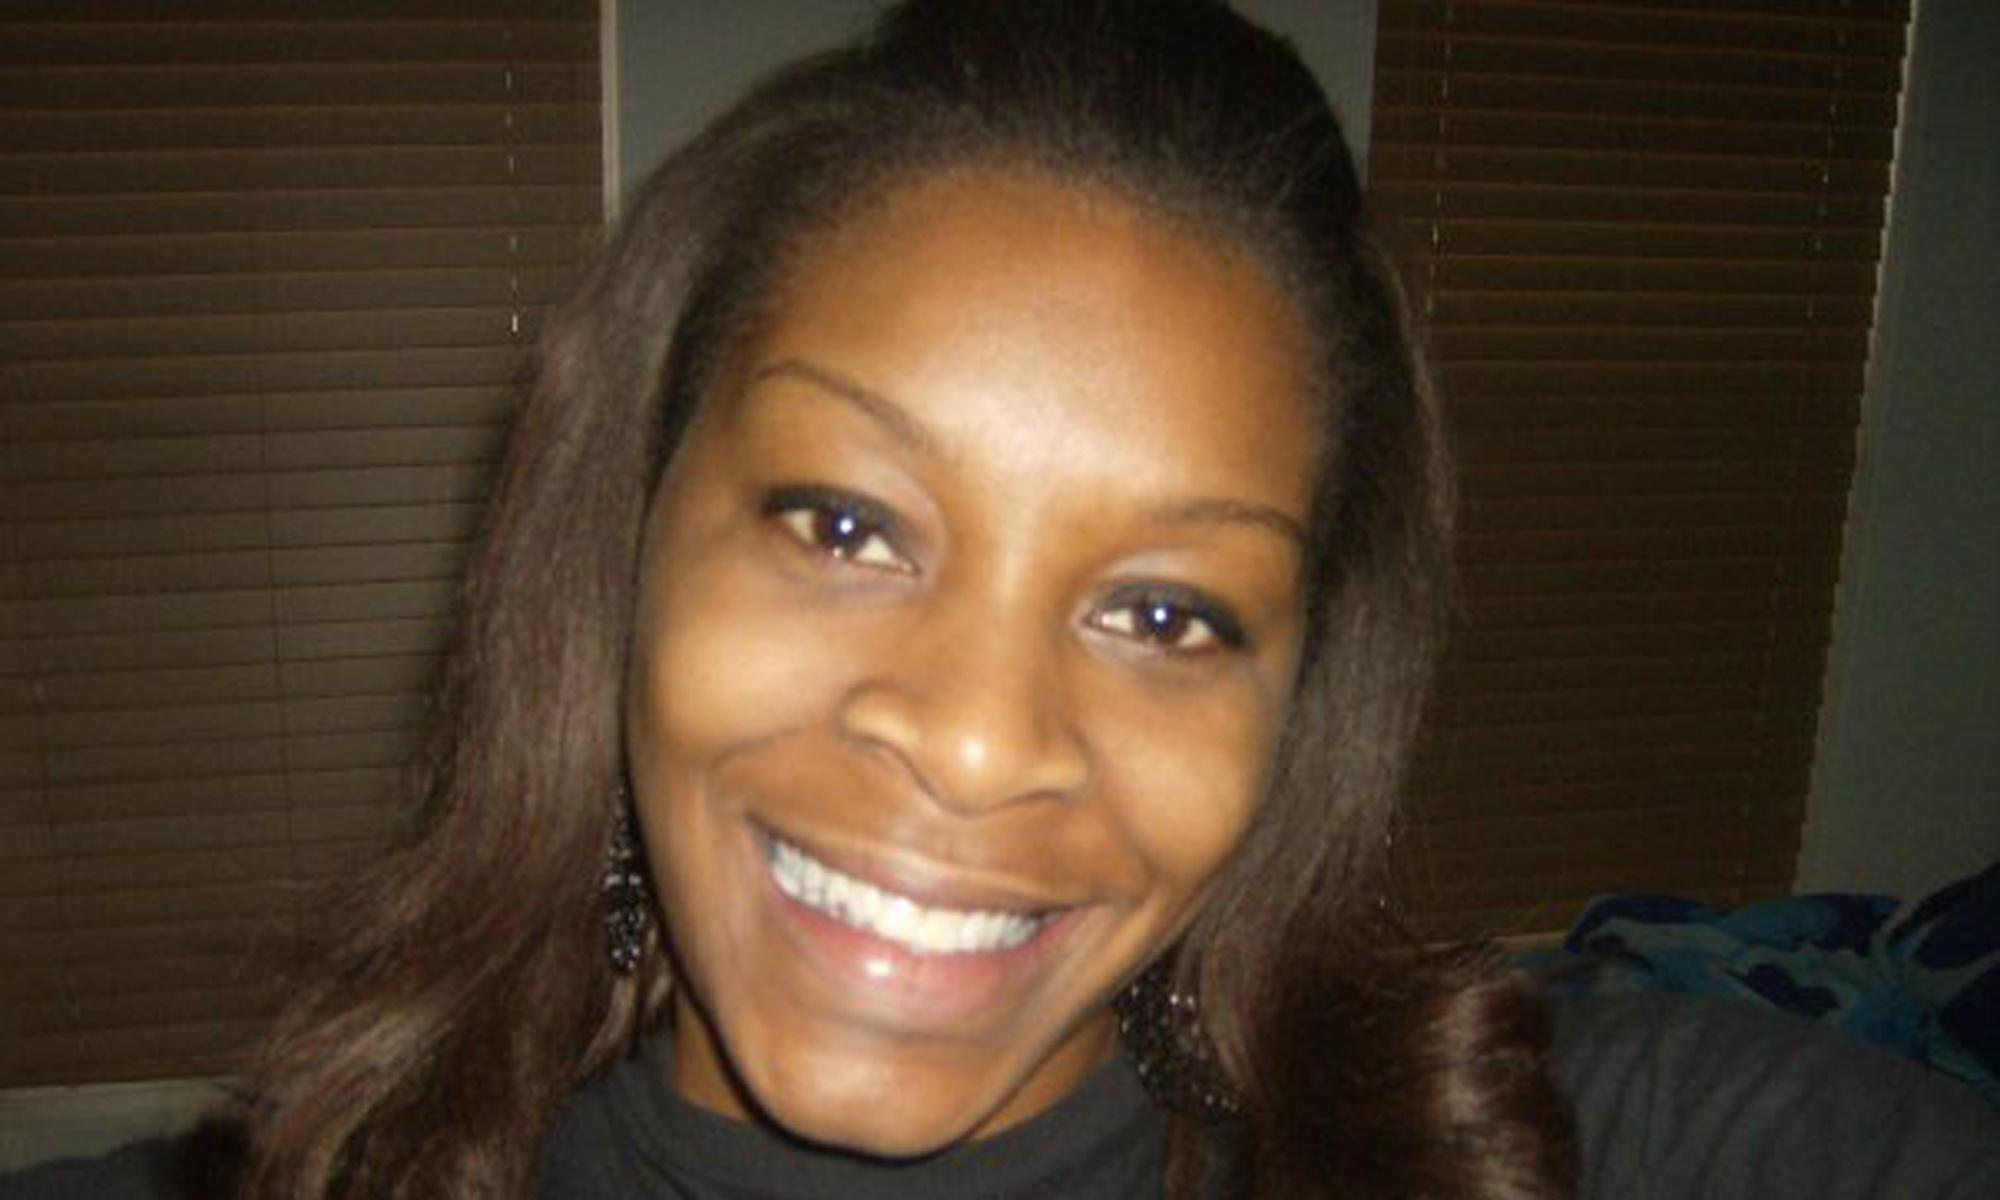 Texas officials deny withholding video of Sandra Bland traffic stop